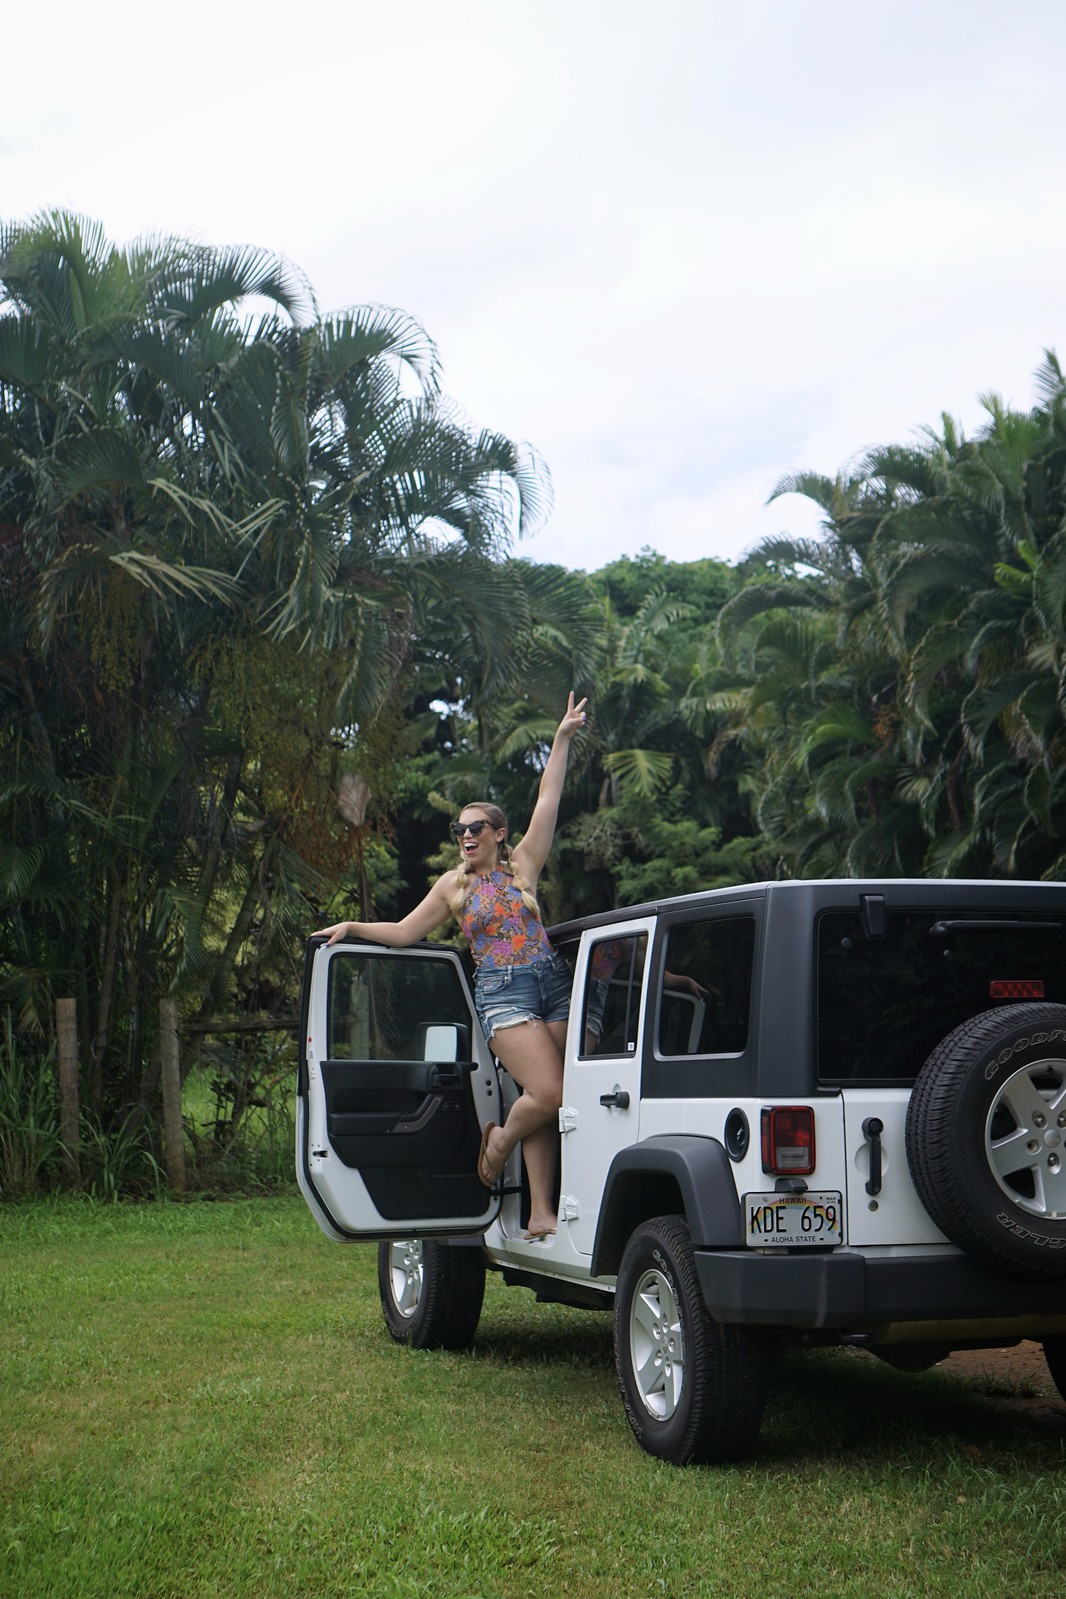 Rent a White Jeep Hawaii Outfit Best Things to do in Kauai Hawaii